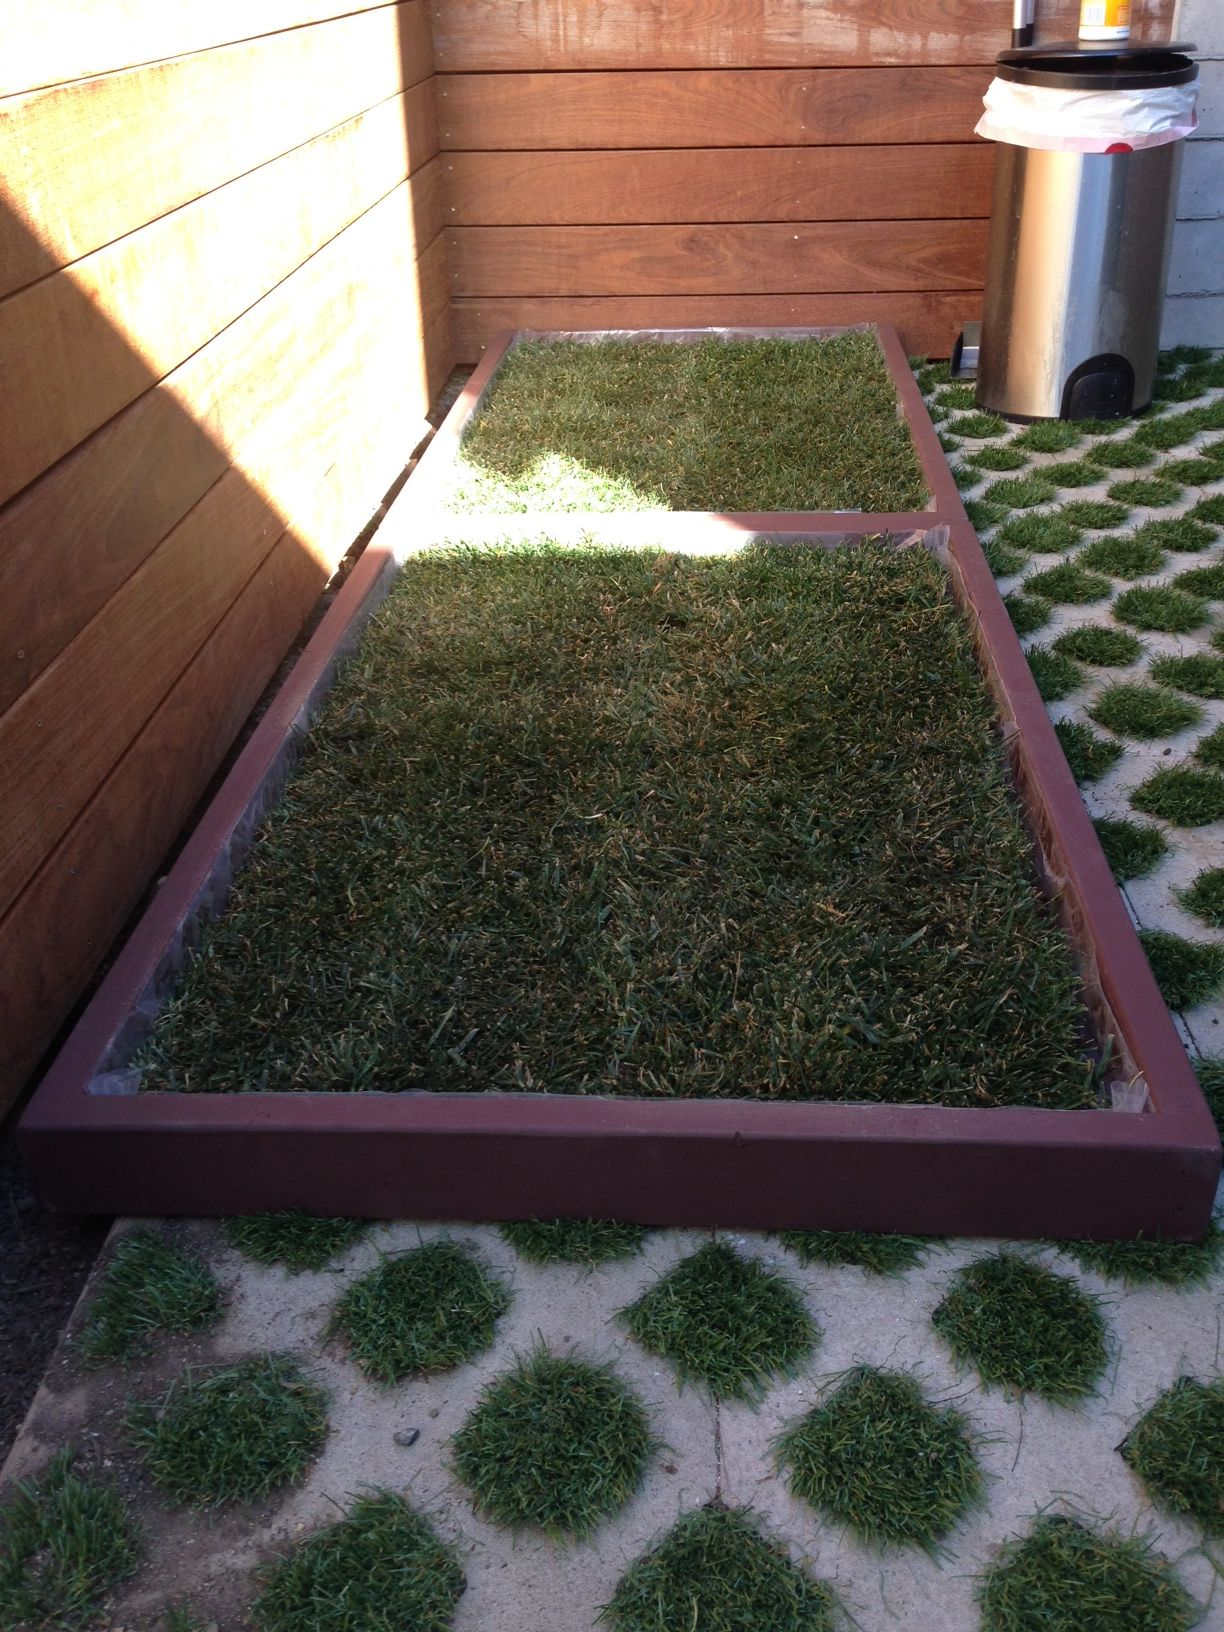 2 Large Dog Grass Pad Boxes Pushed Together To Create A Very Large Patch Of Real Dog Potty Grass Learn More At Www D Indoor Dog Potty Dog Potty Patch Dog Turf The #1 scientifically proven lawn regrowth product. 2 large dog grass pad boxes pushed